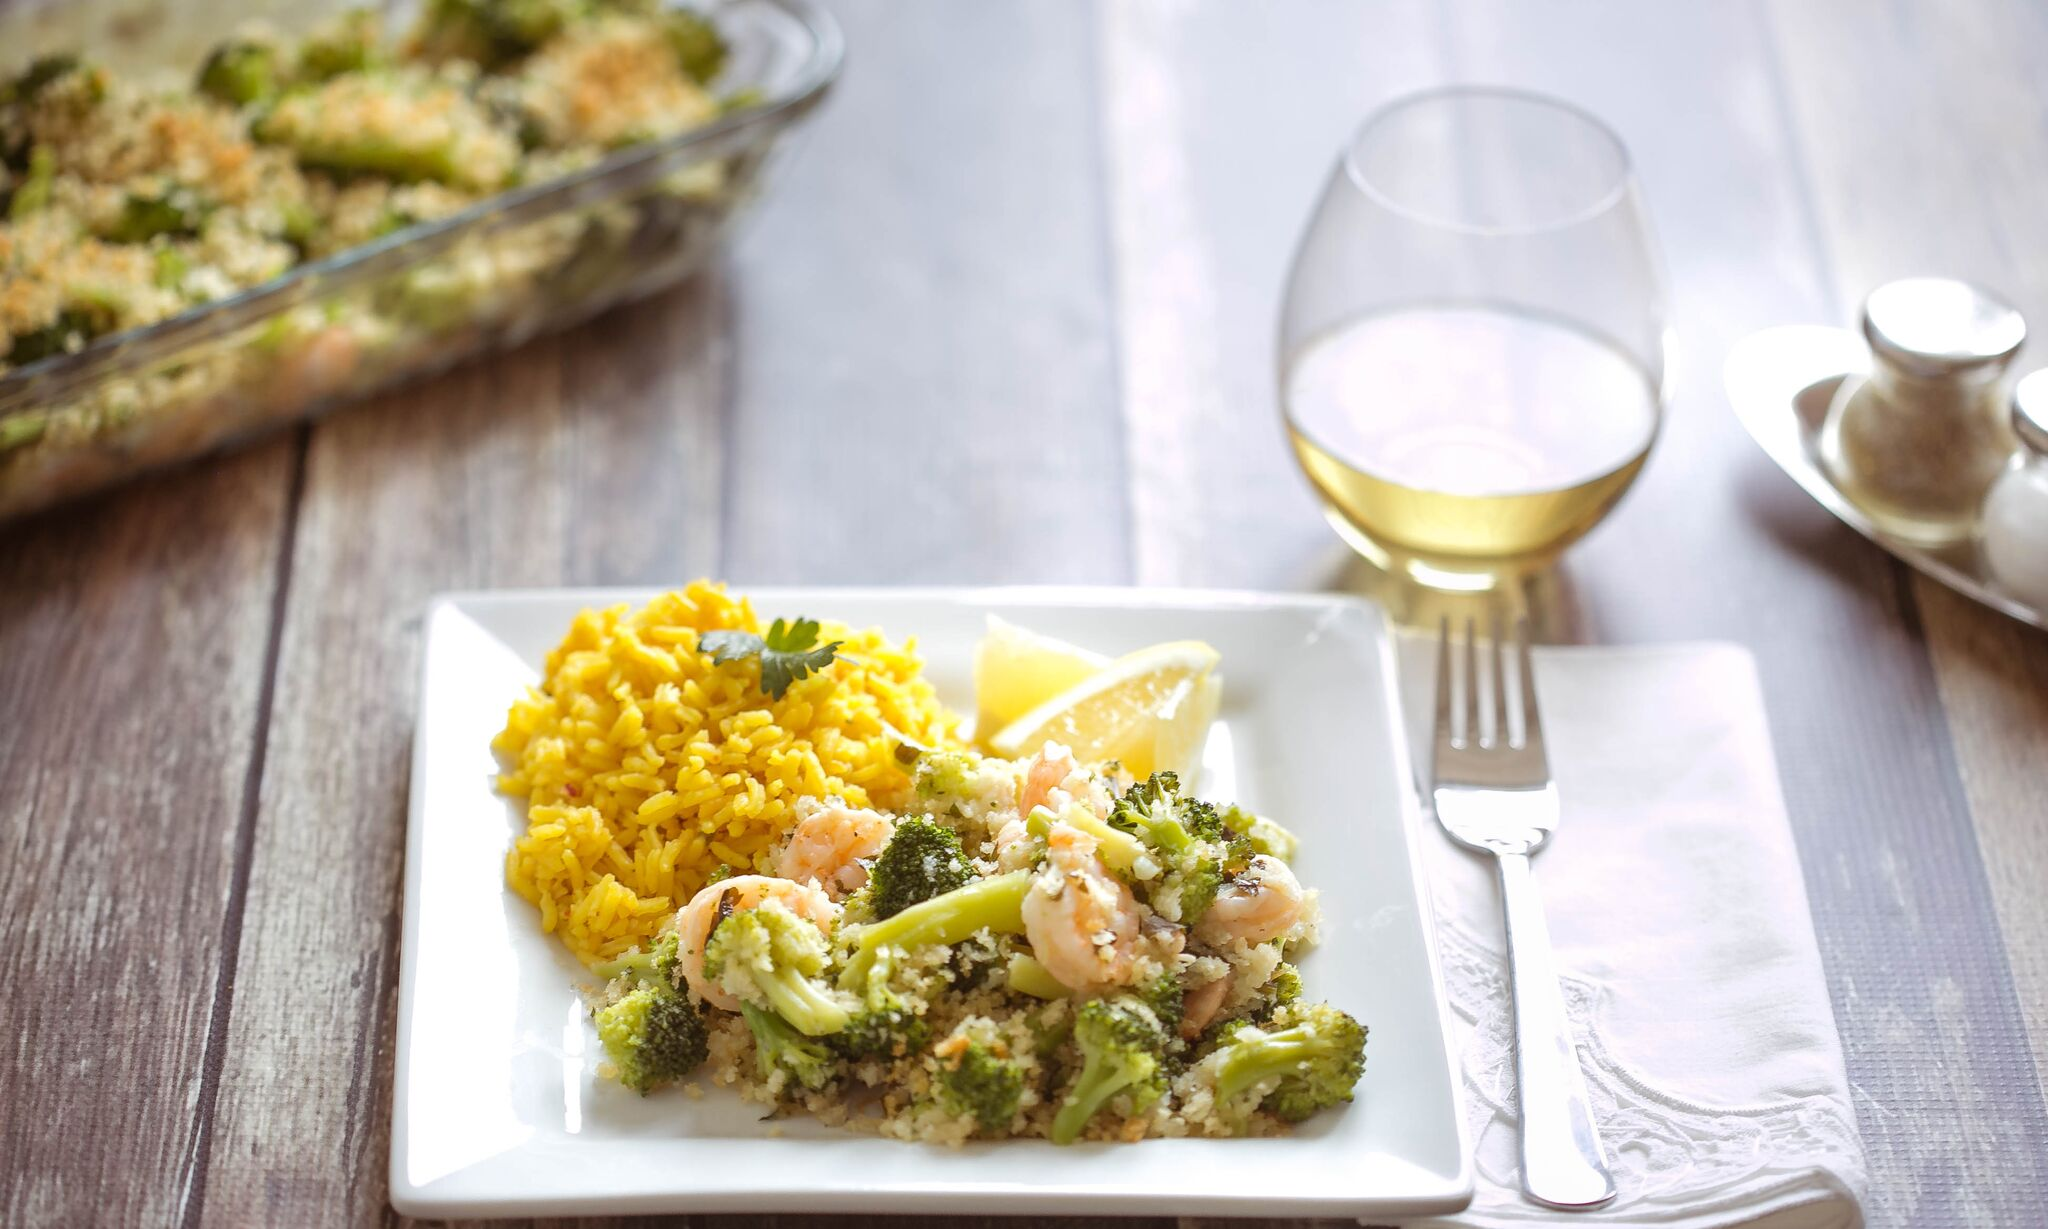 Serve finished shrimp and broccoli bake on plate with rice and a glass of wine